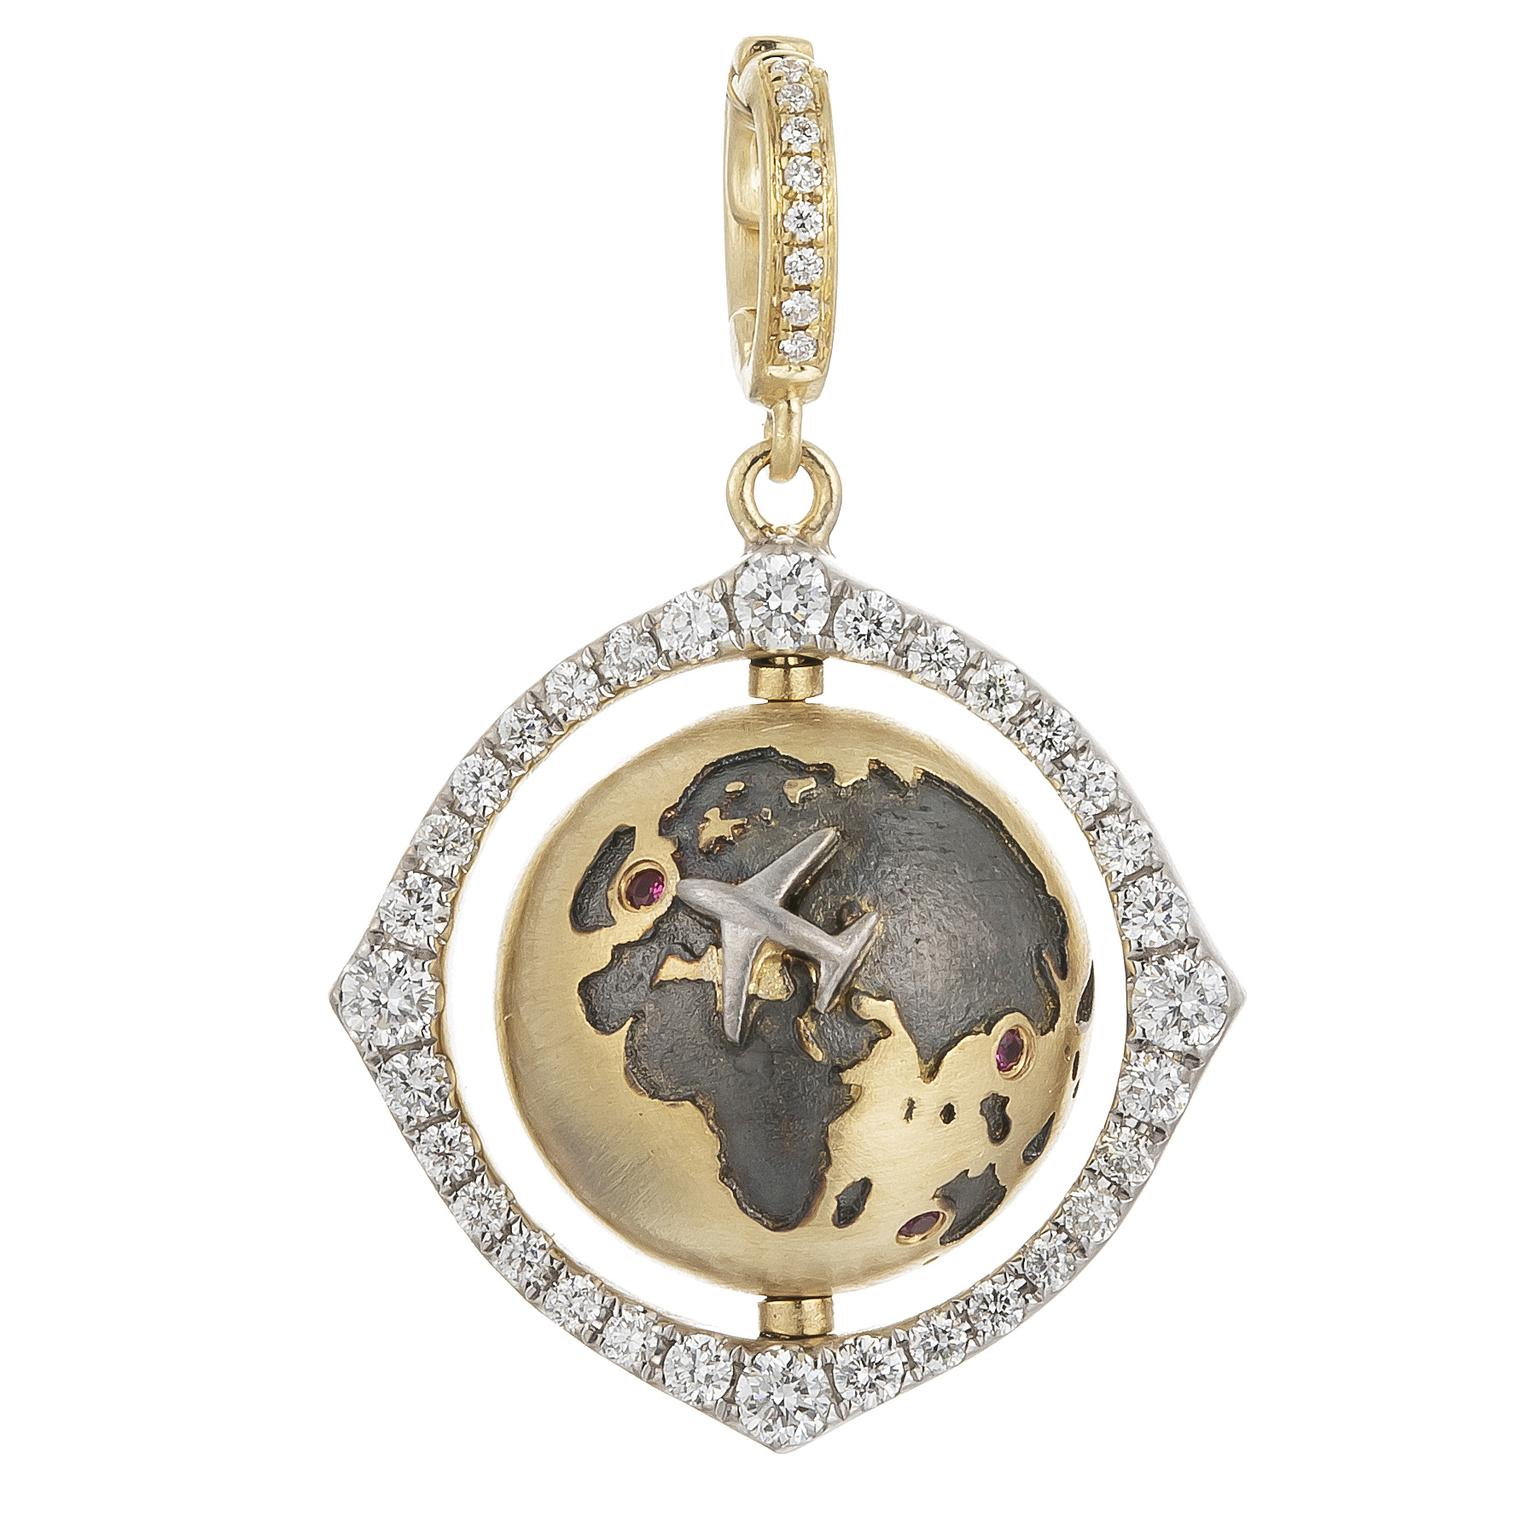 Annoushka My Life in 7 Charms, Globe charm